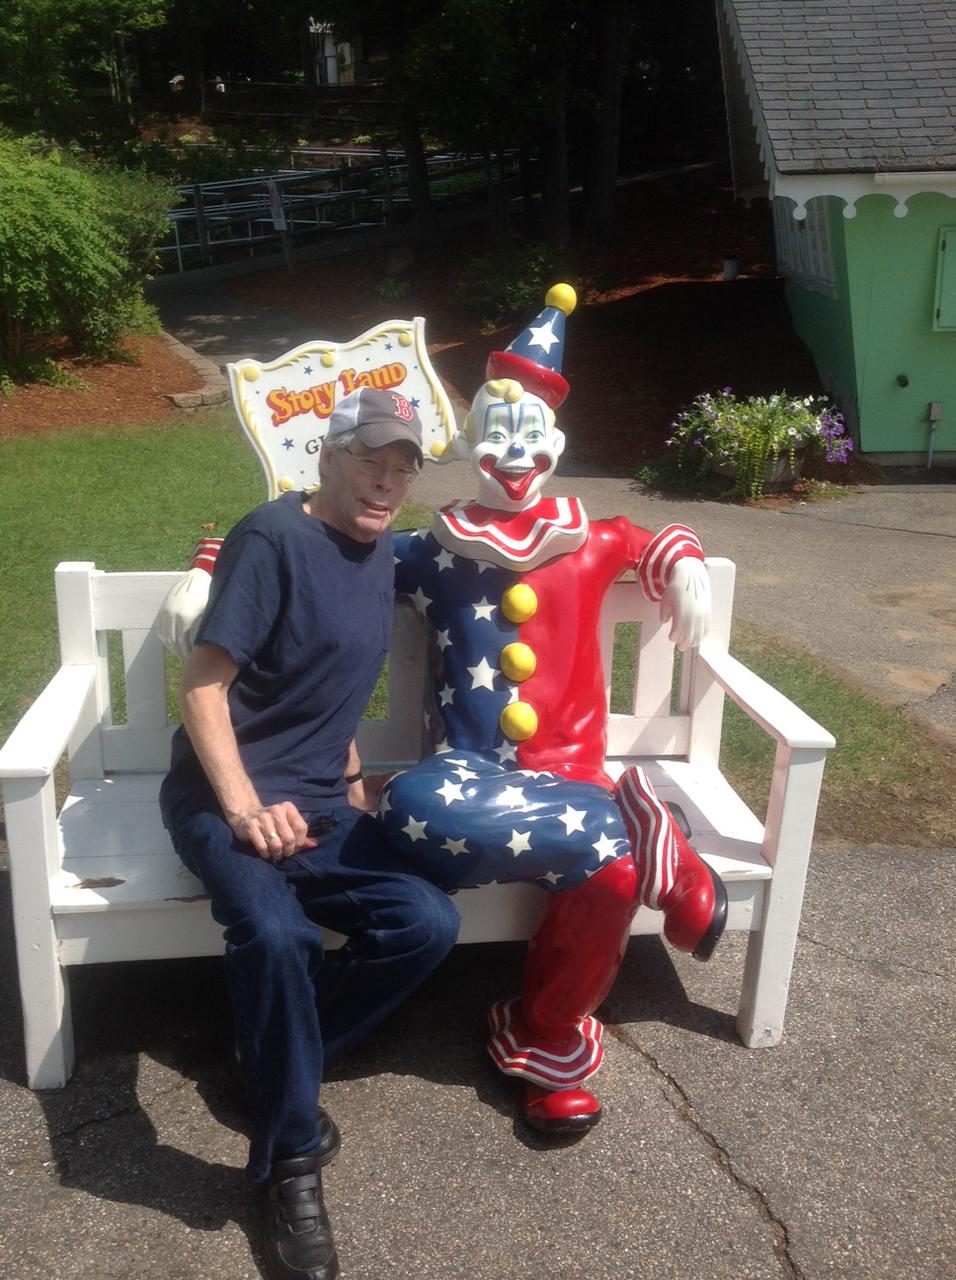 Just visiting with a friend from Derry, Maine. http://t.co/VIiyqCXDkK